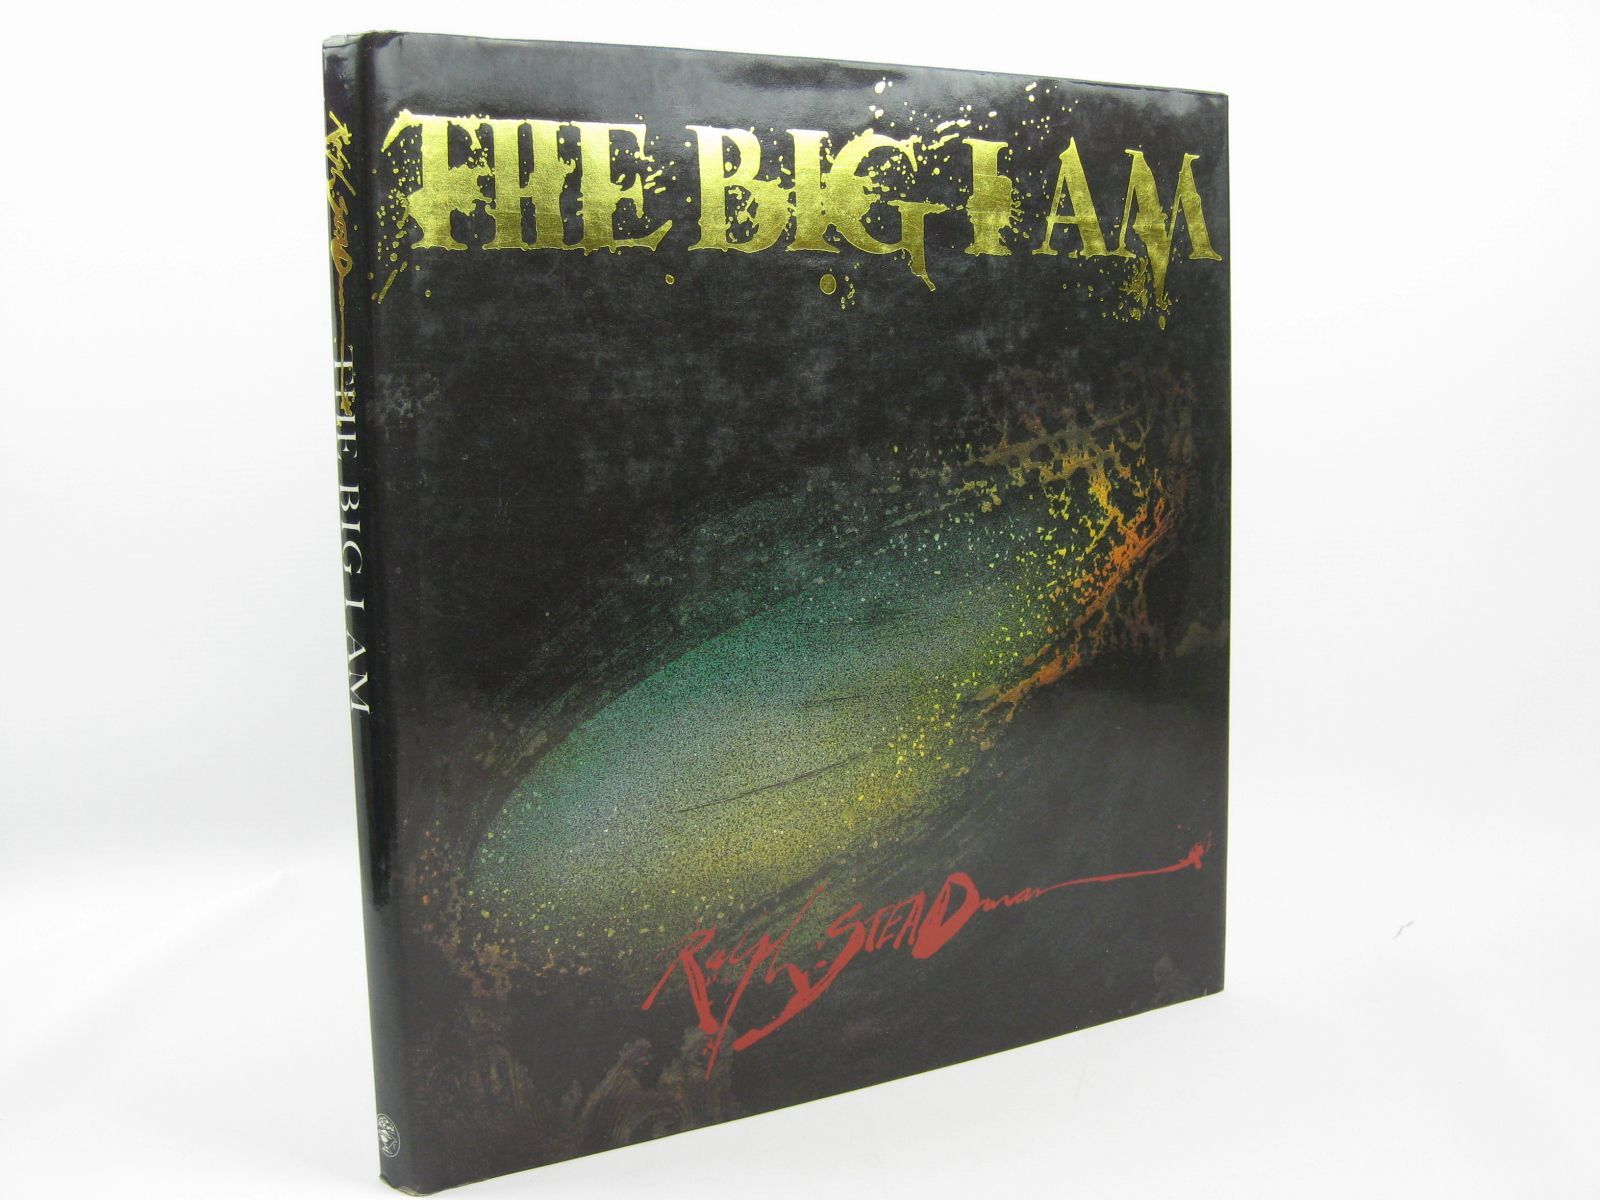 Photo of THE BIG I AM written by Steadman, Ralph illustrated by Steadman, Ralph published by Jonathan Cape (STOCK CODE: 1316253)  for sale by Stella & Rose's Books